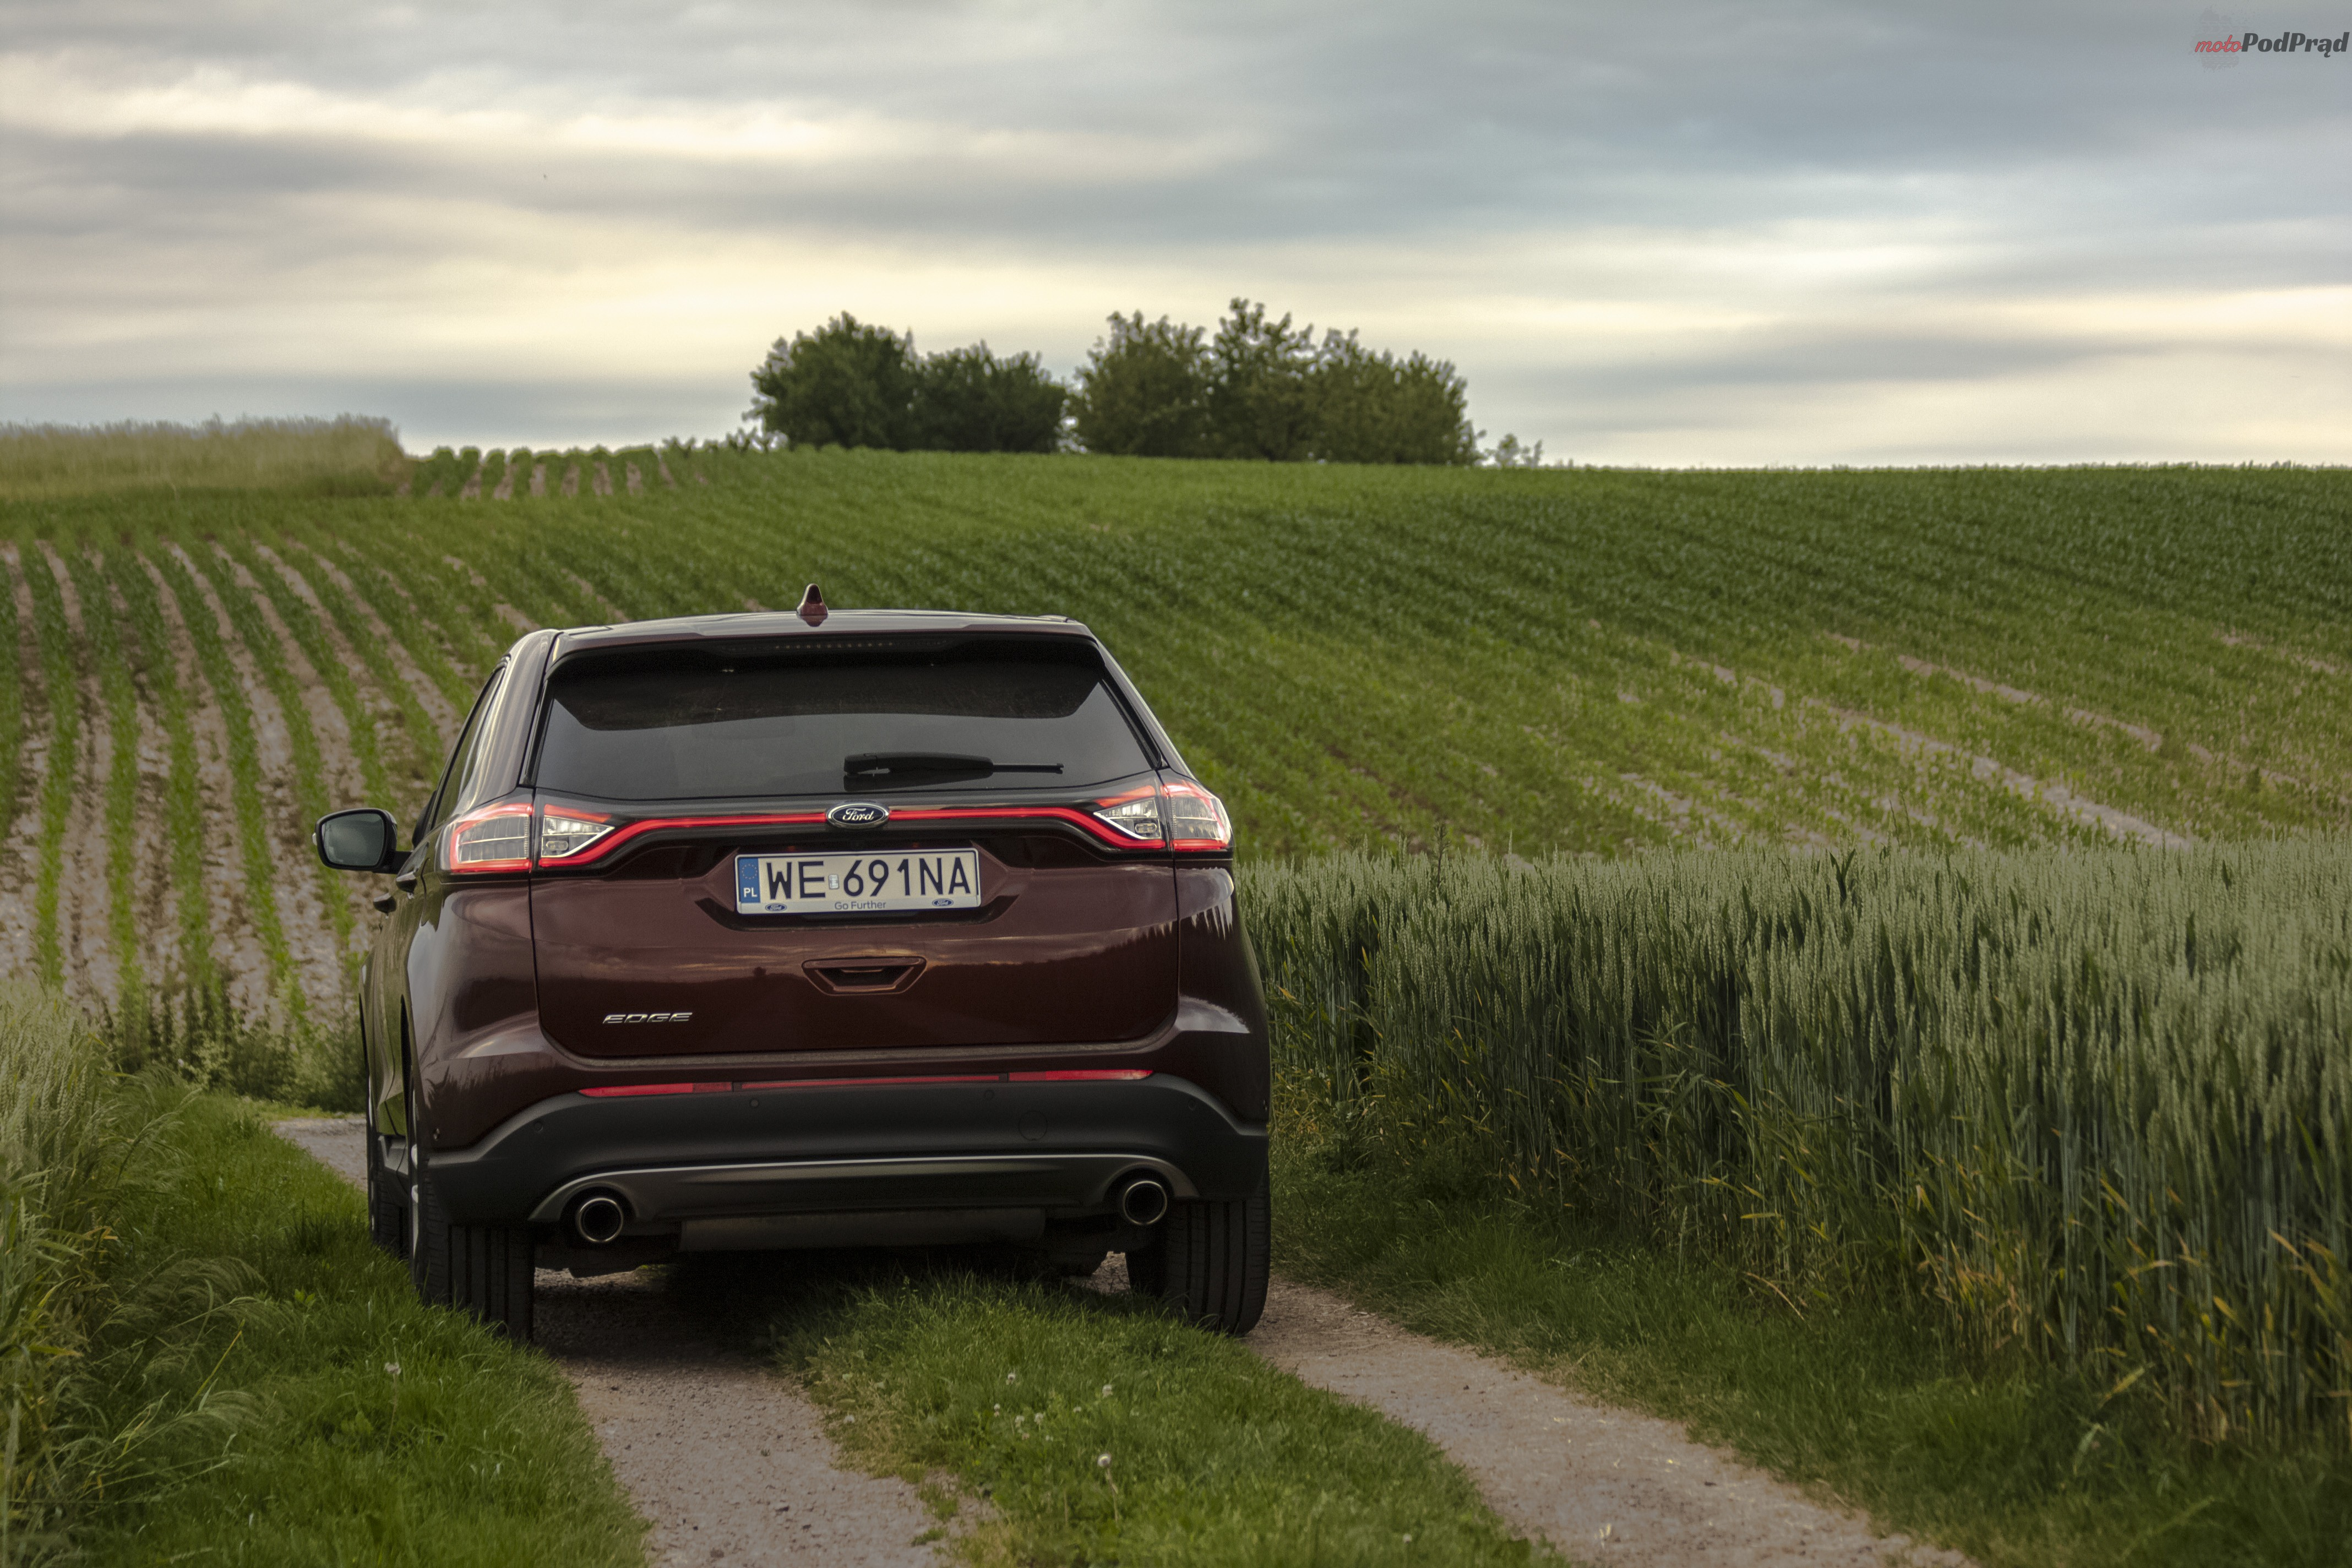 Ford Edge 7 Test: Ford Edge 2.0 TDCi   jazda na krawędzi